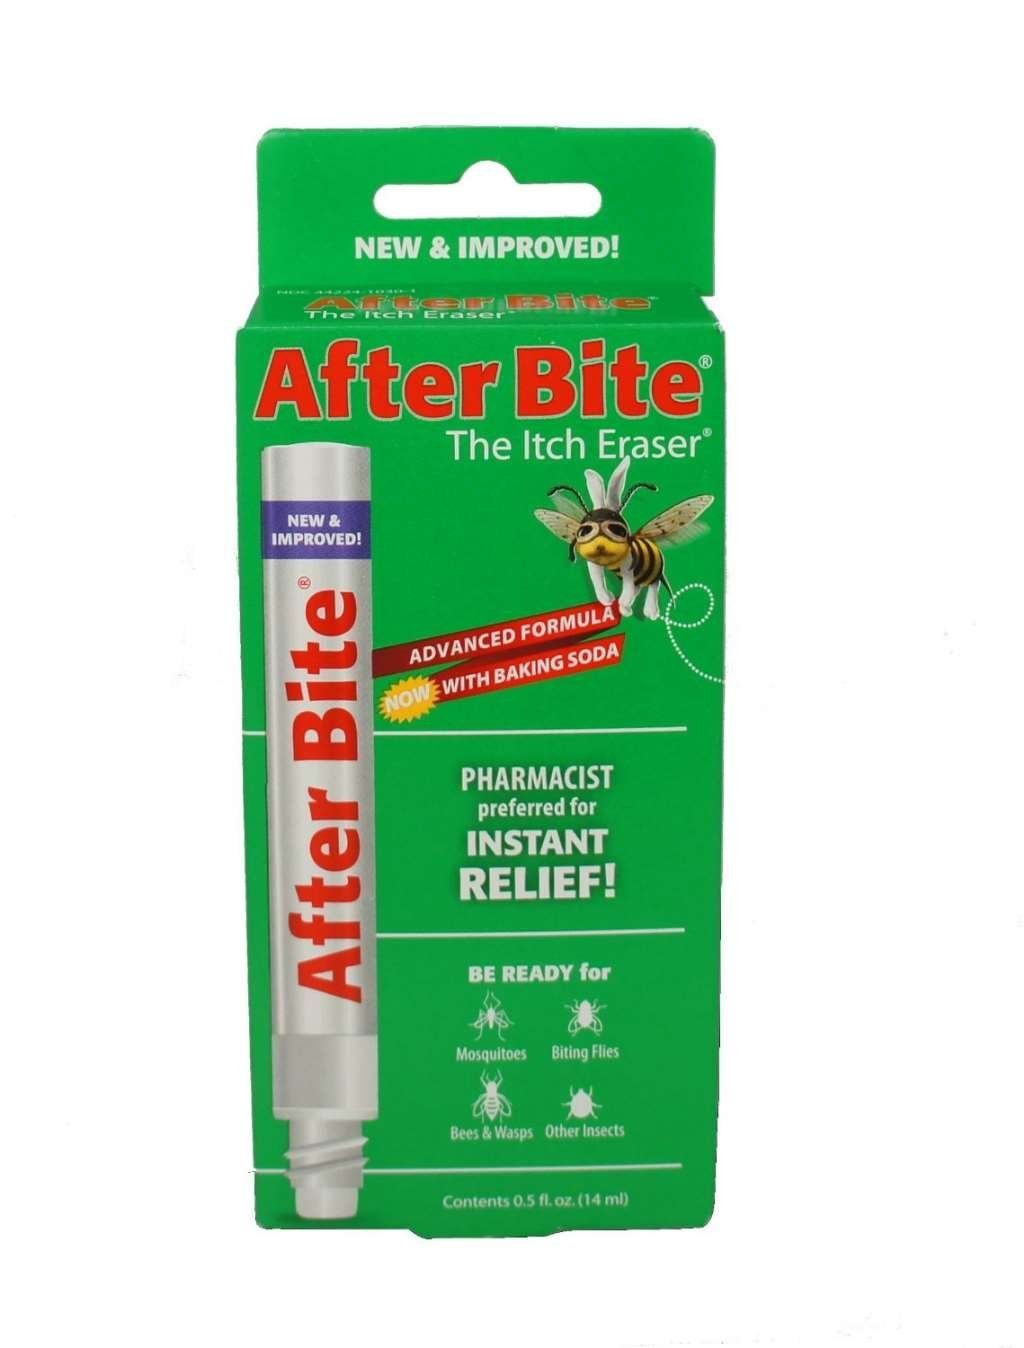 After Bite Advanced Formula With Baking Soda - 0.5 Fl Oz (14 mL)